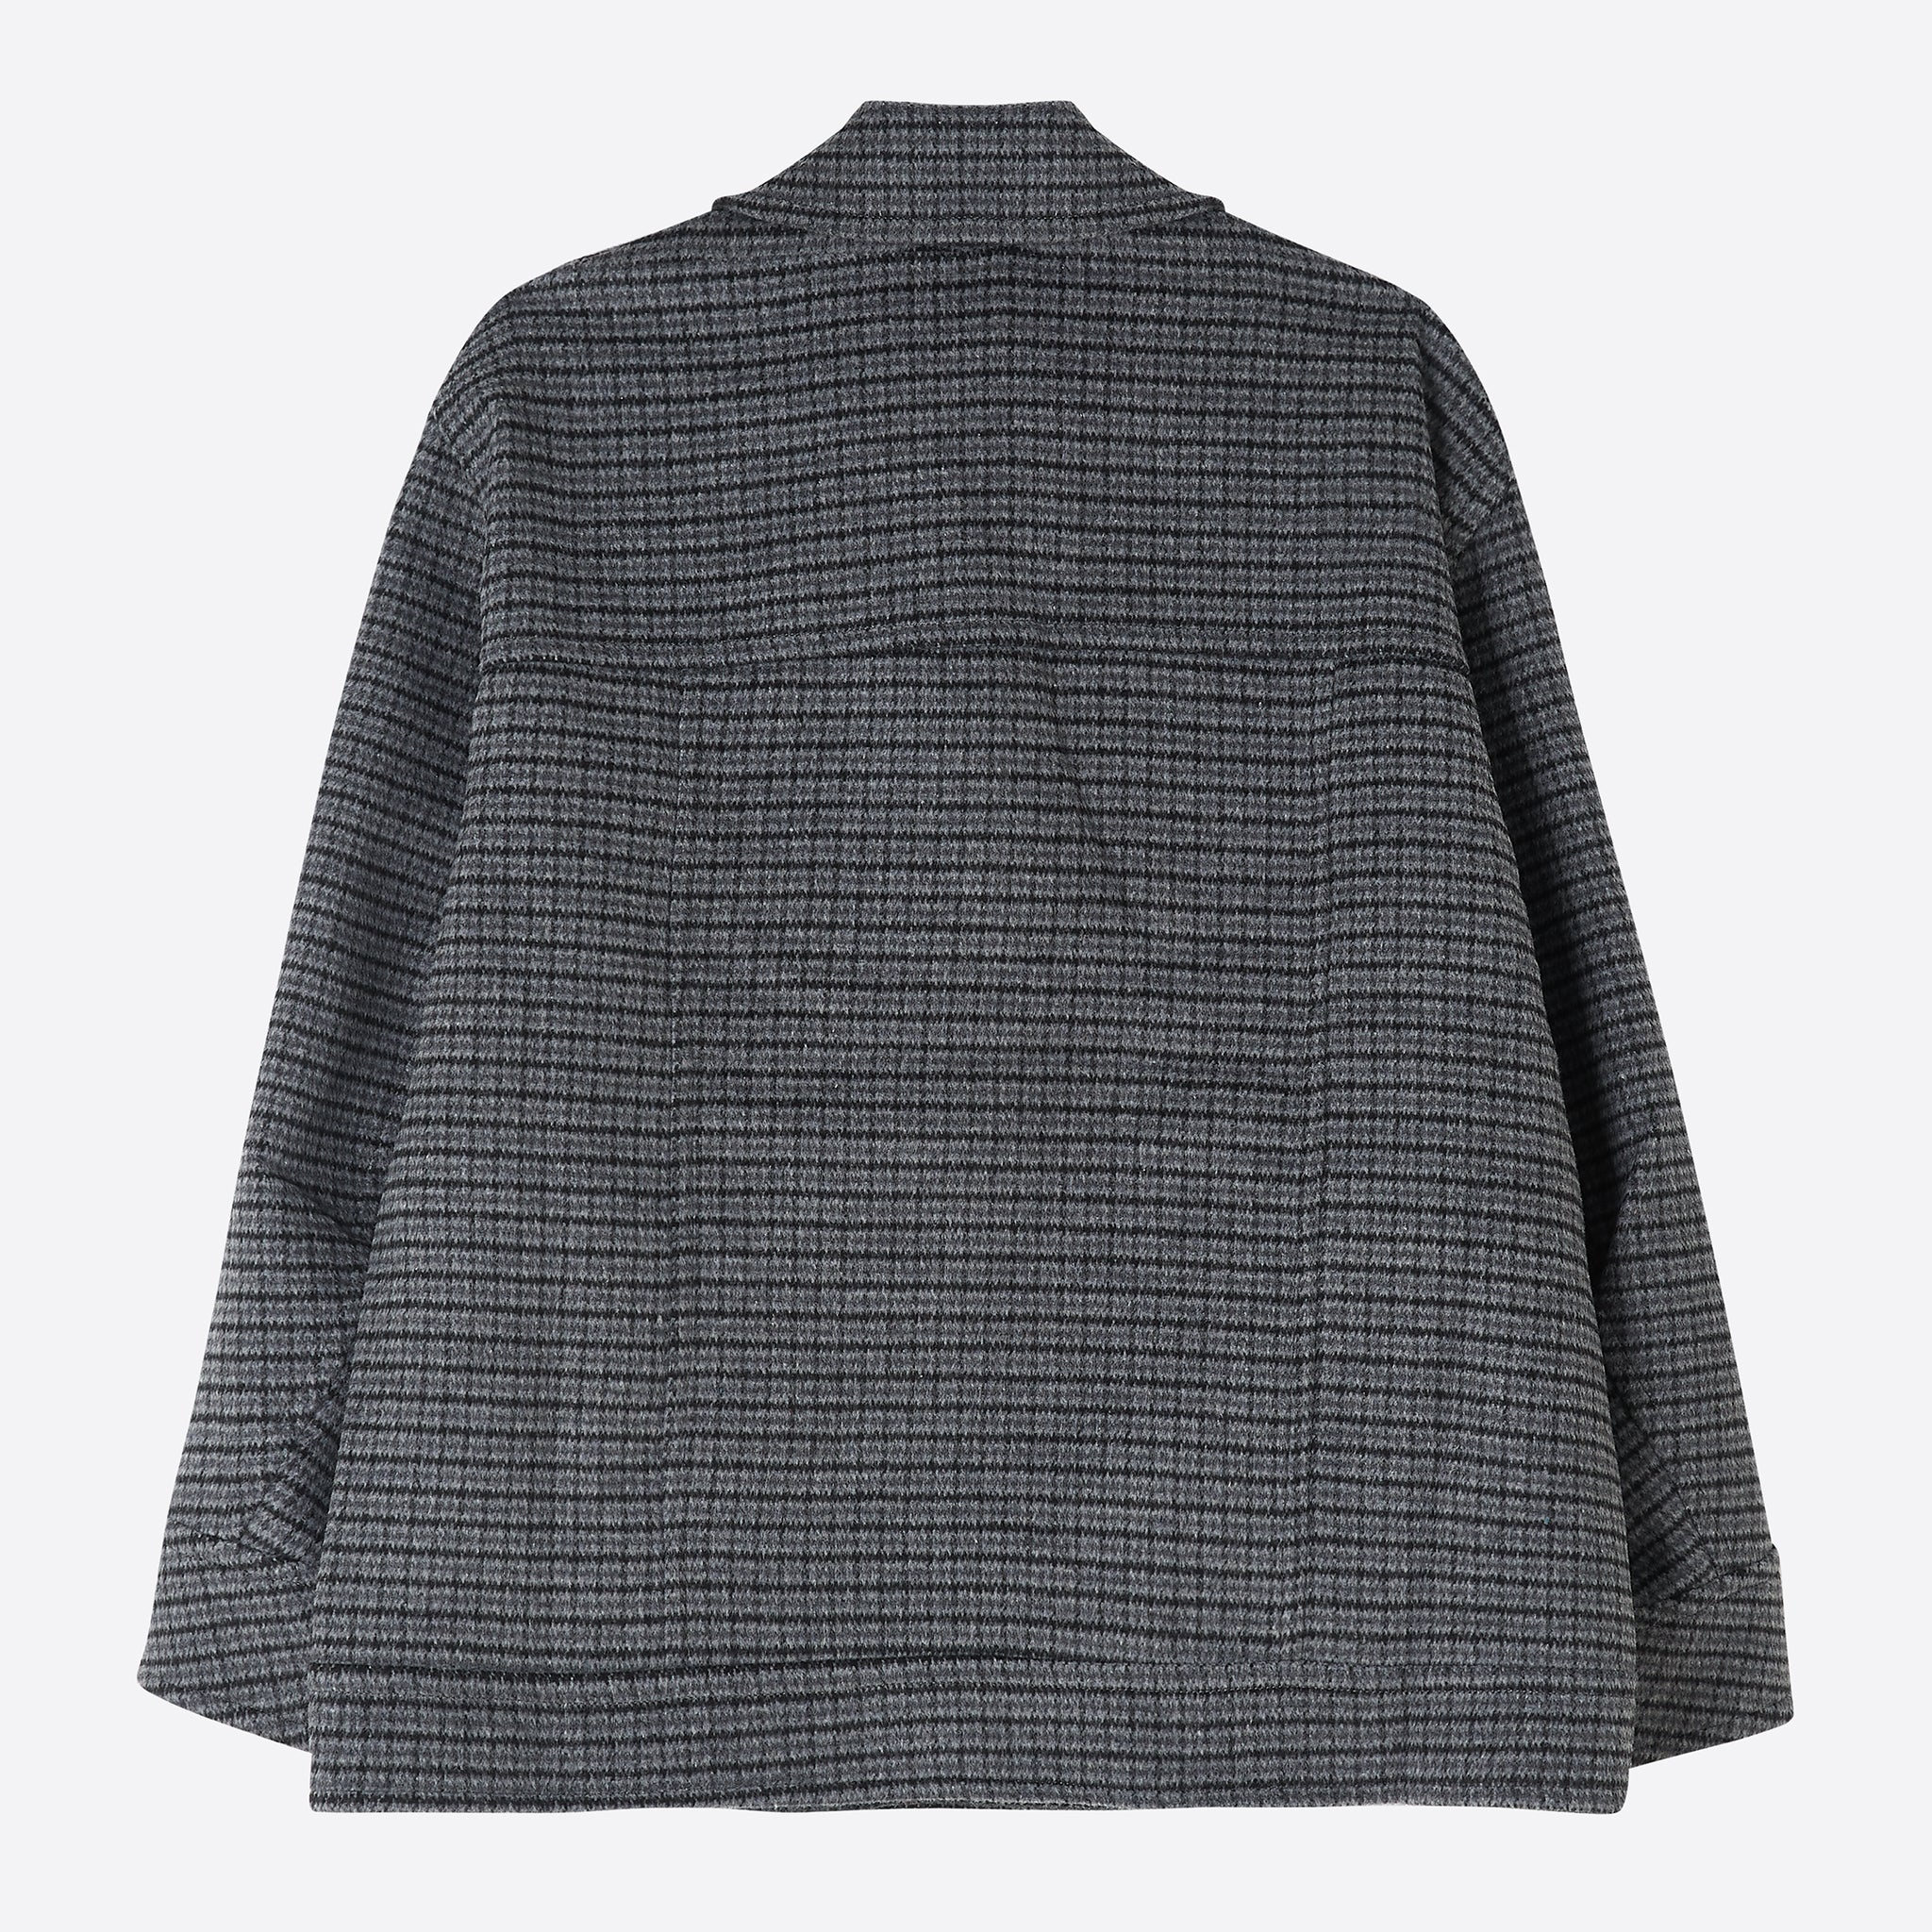 Ganni Check Wool Oversize Jacket in Charcoal Grey